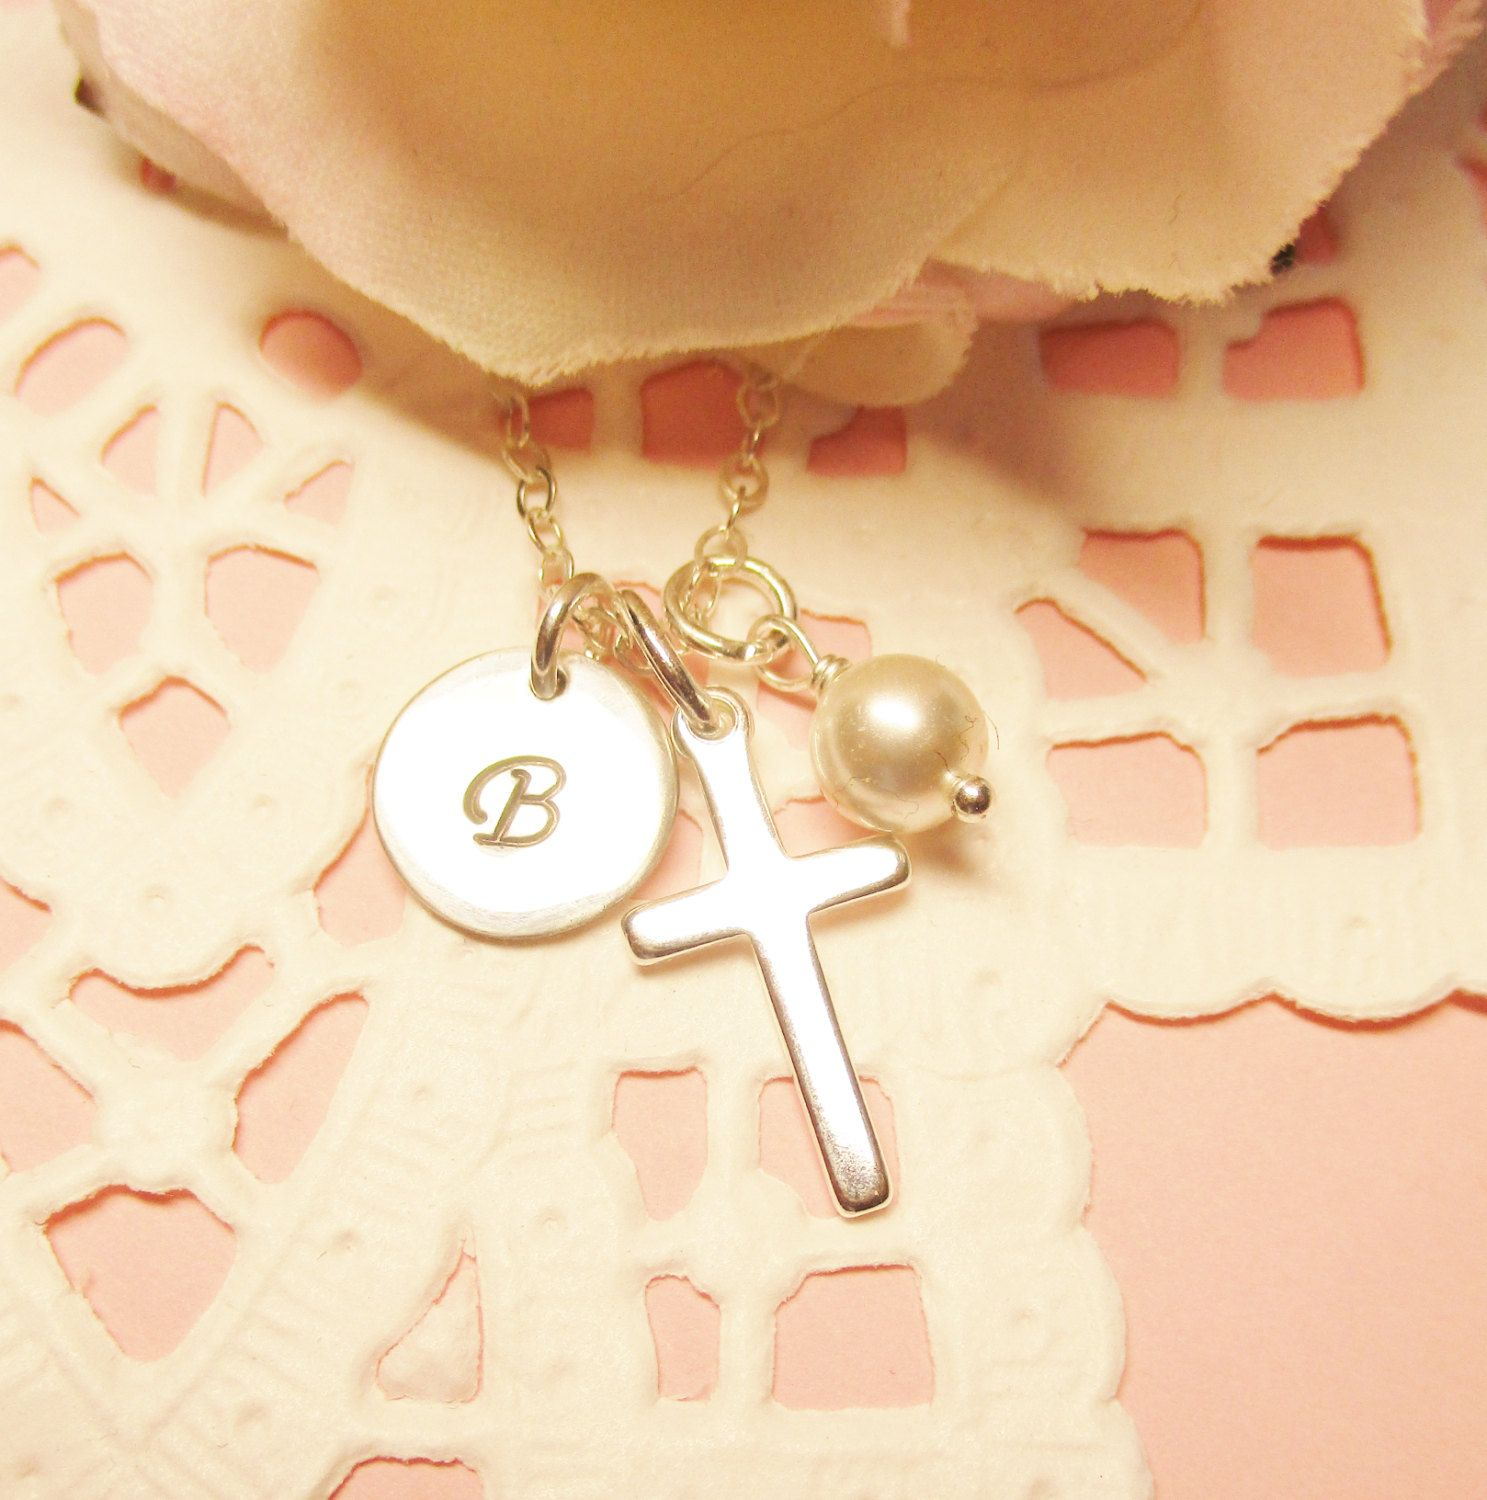 jesus listing jewelry gold necklace gift christian verse religious il scripture disc faith charm fullxfull bible baptism